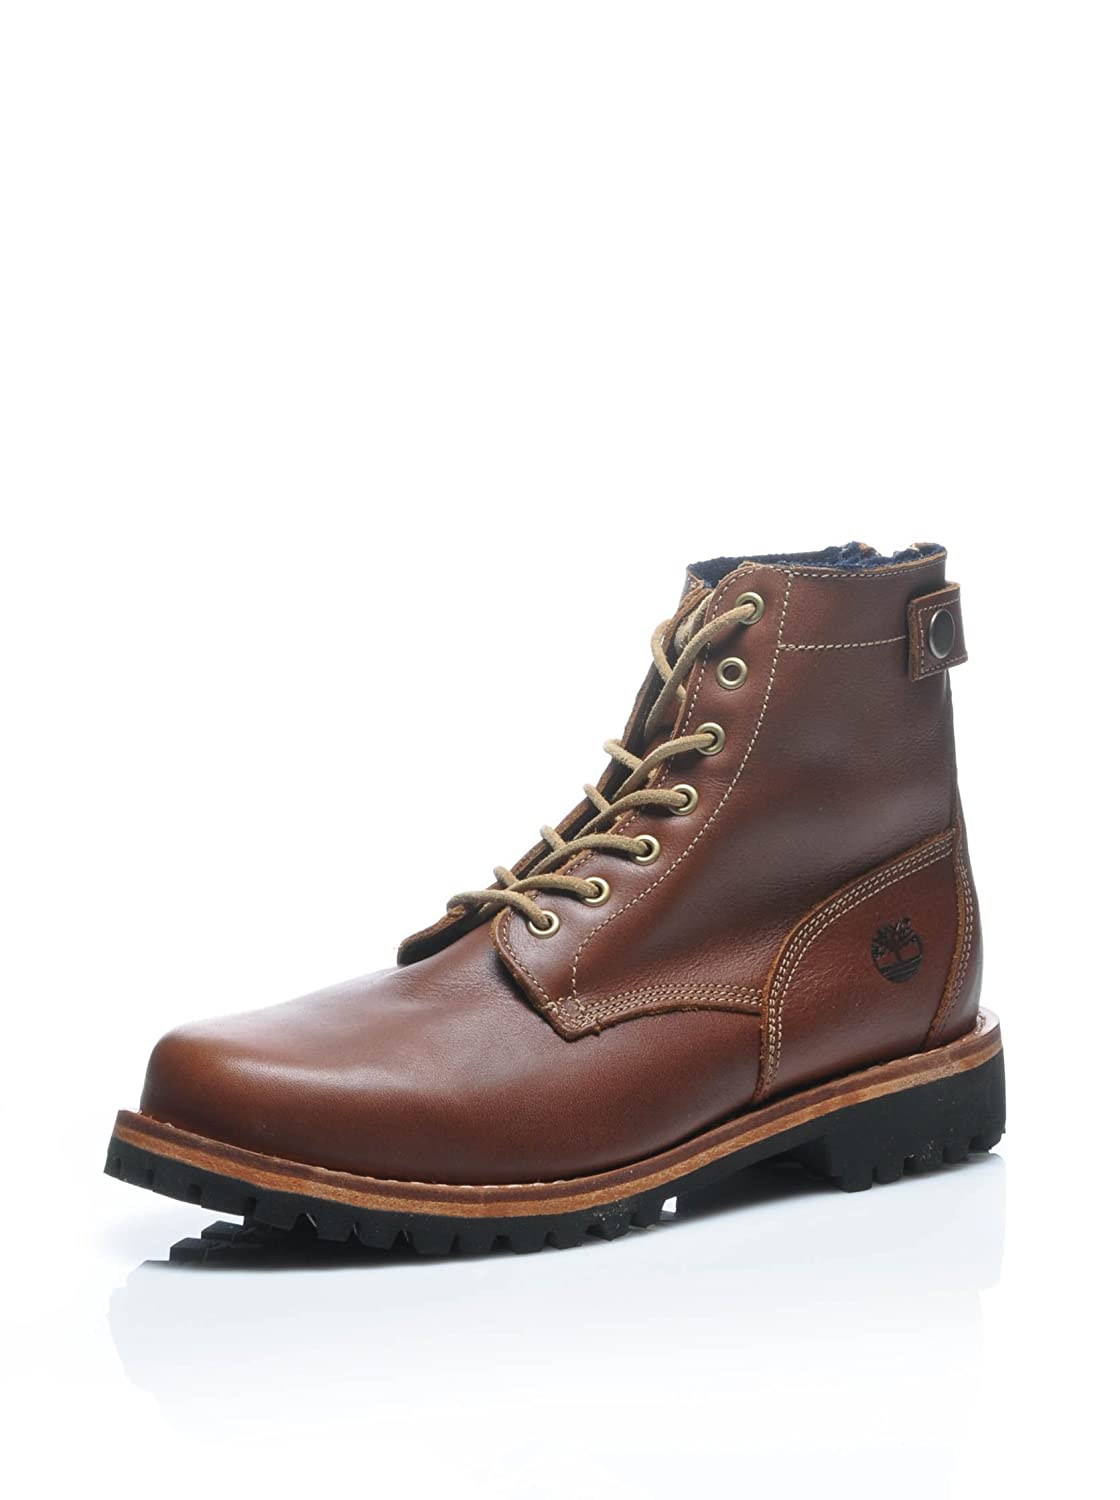 Timberland Earthkeepers Heritage Boots, Glazed Ginger at